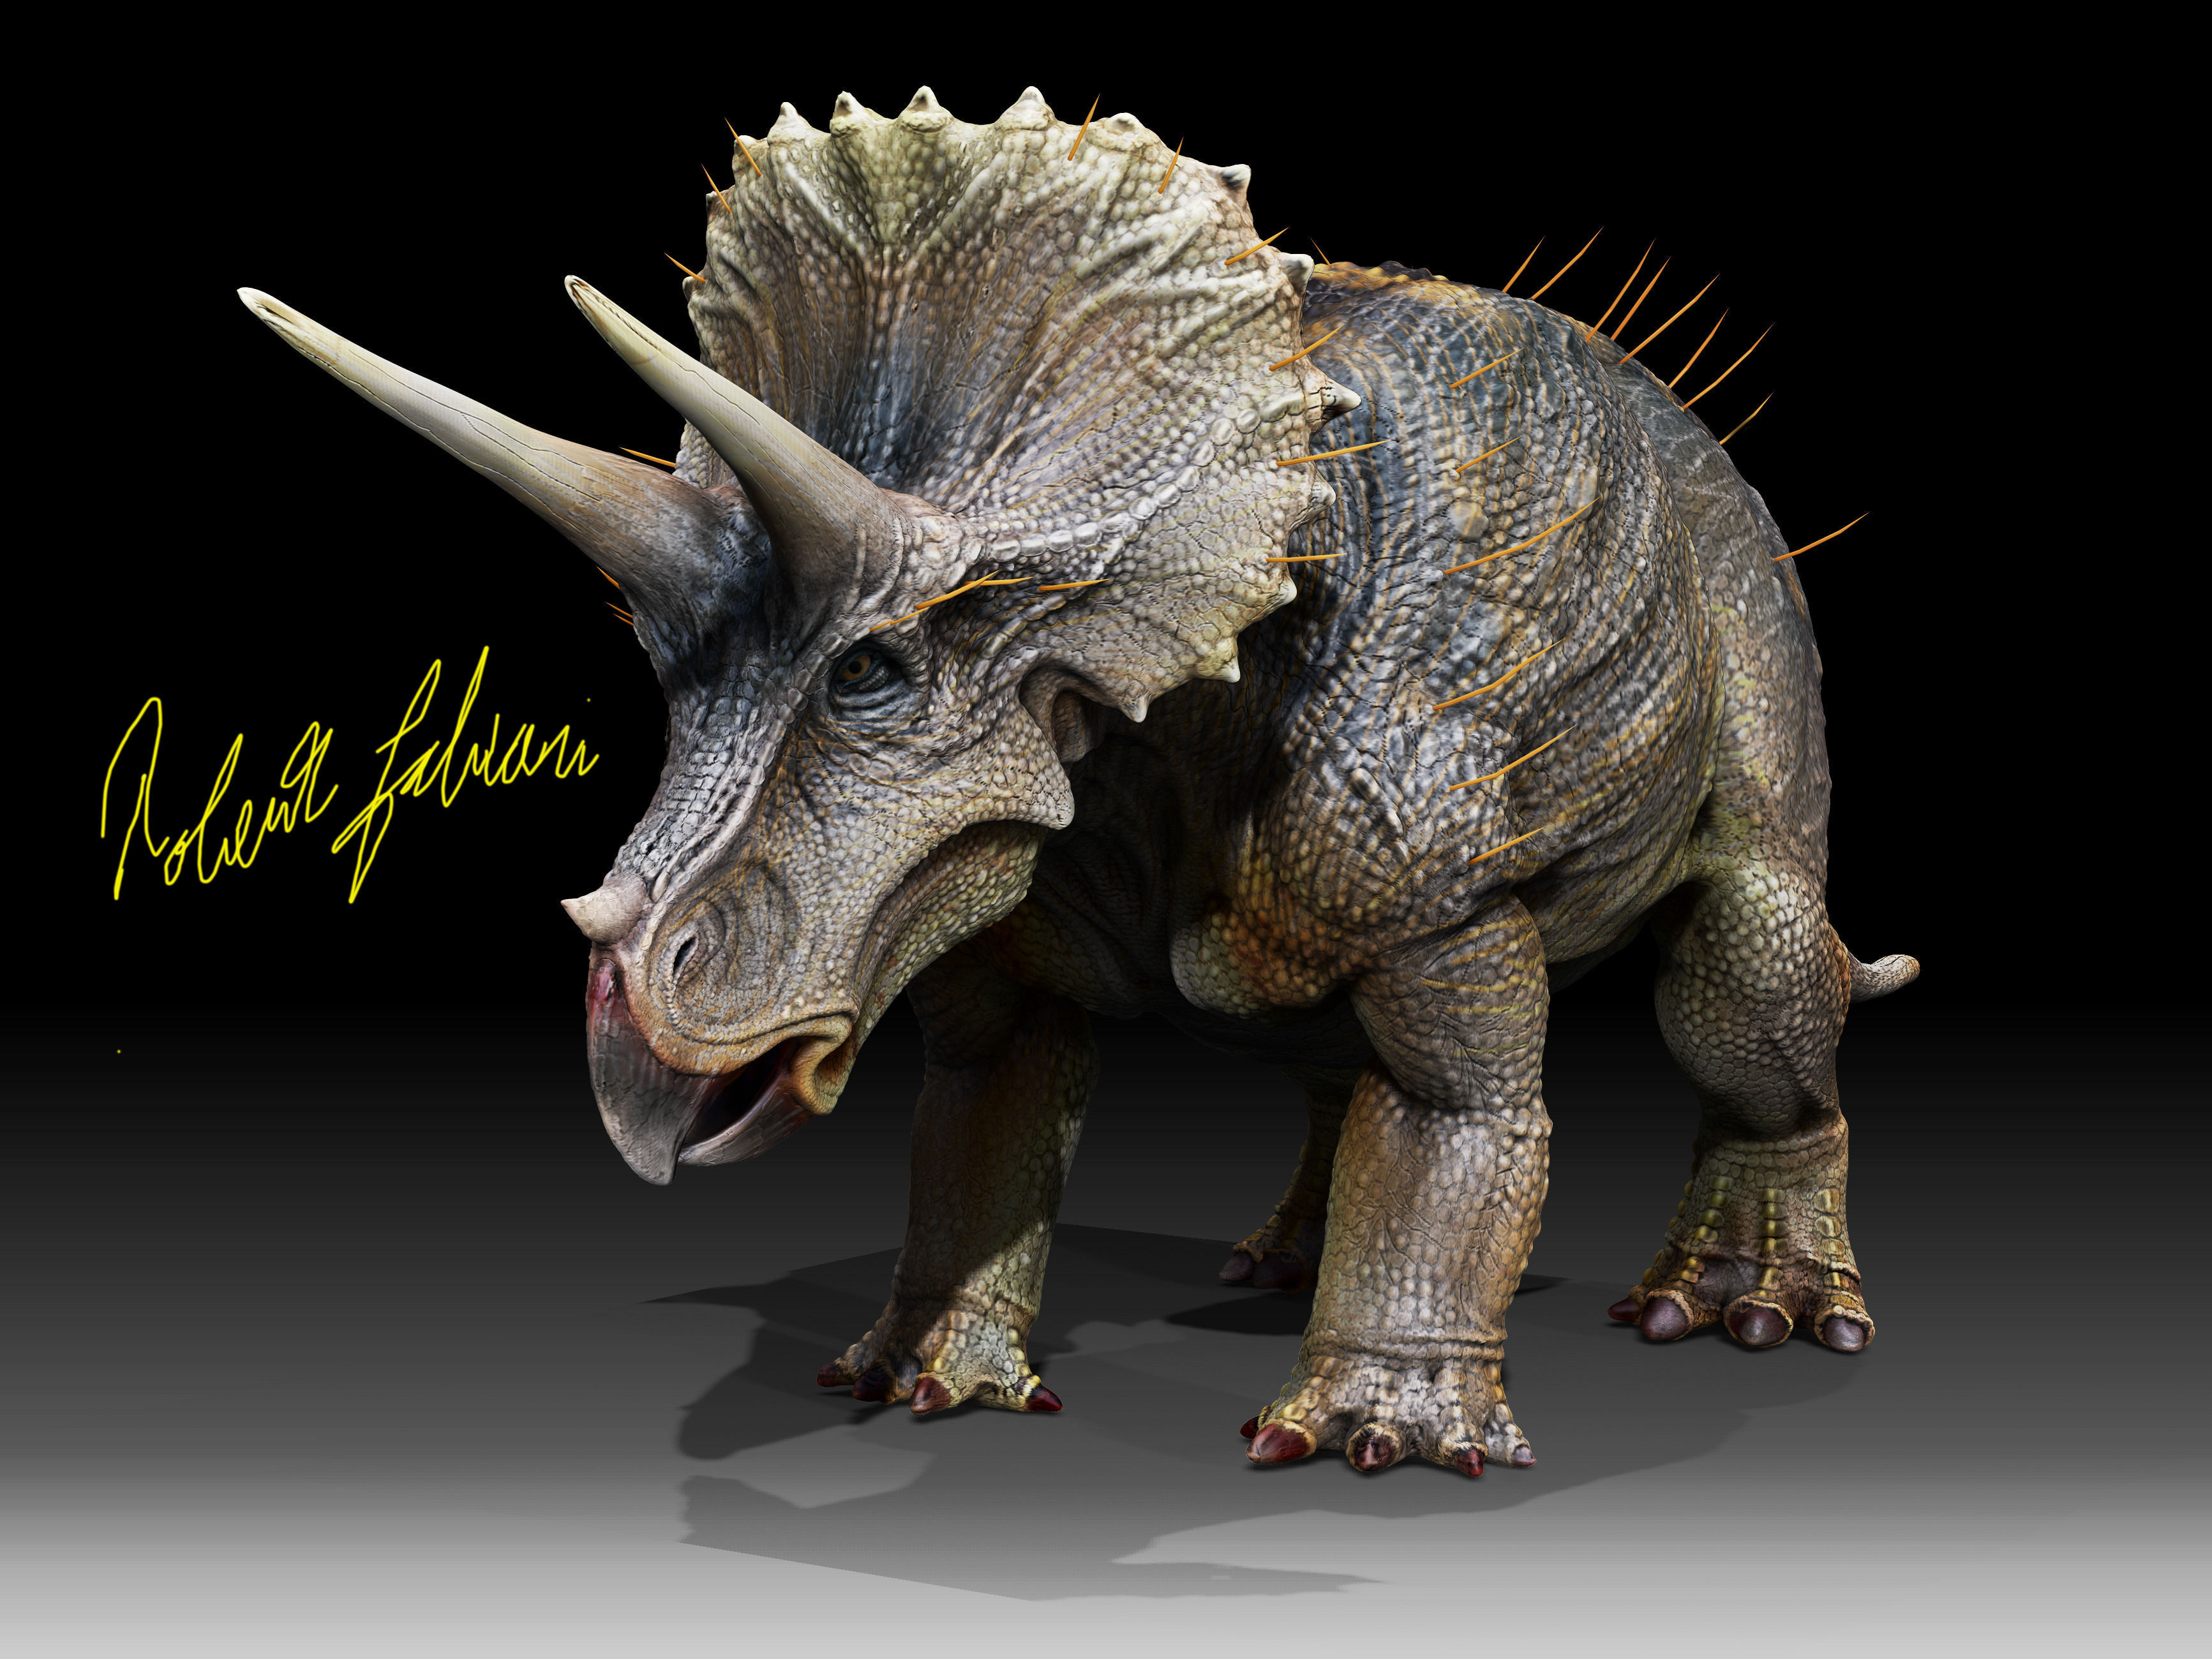 Papo Baby Triceratops Dinosaur Model Reviewed - YouTube |Triceratops Dinosaur